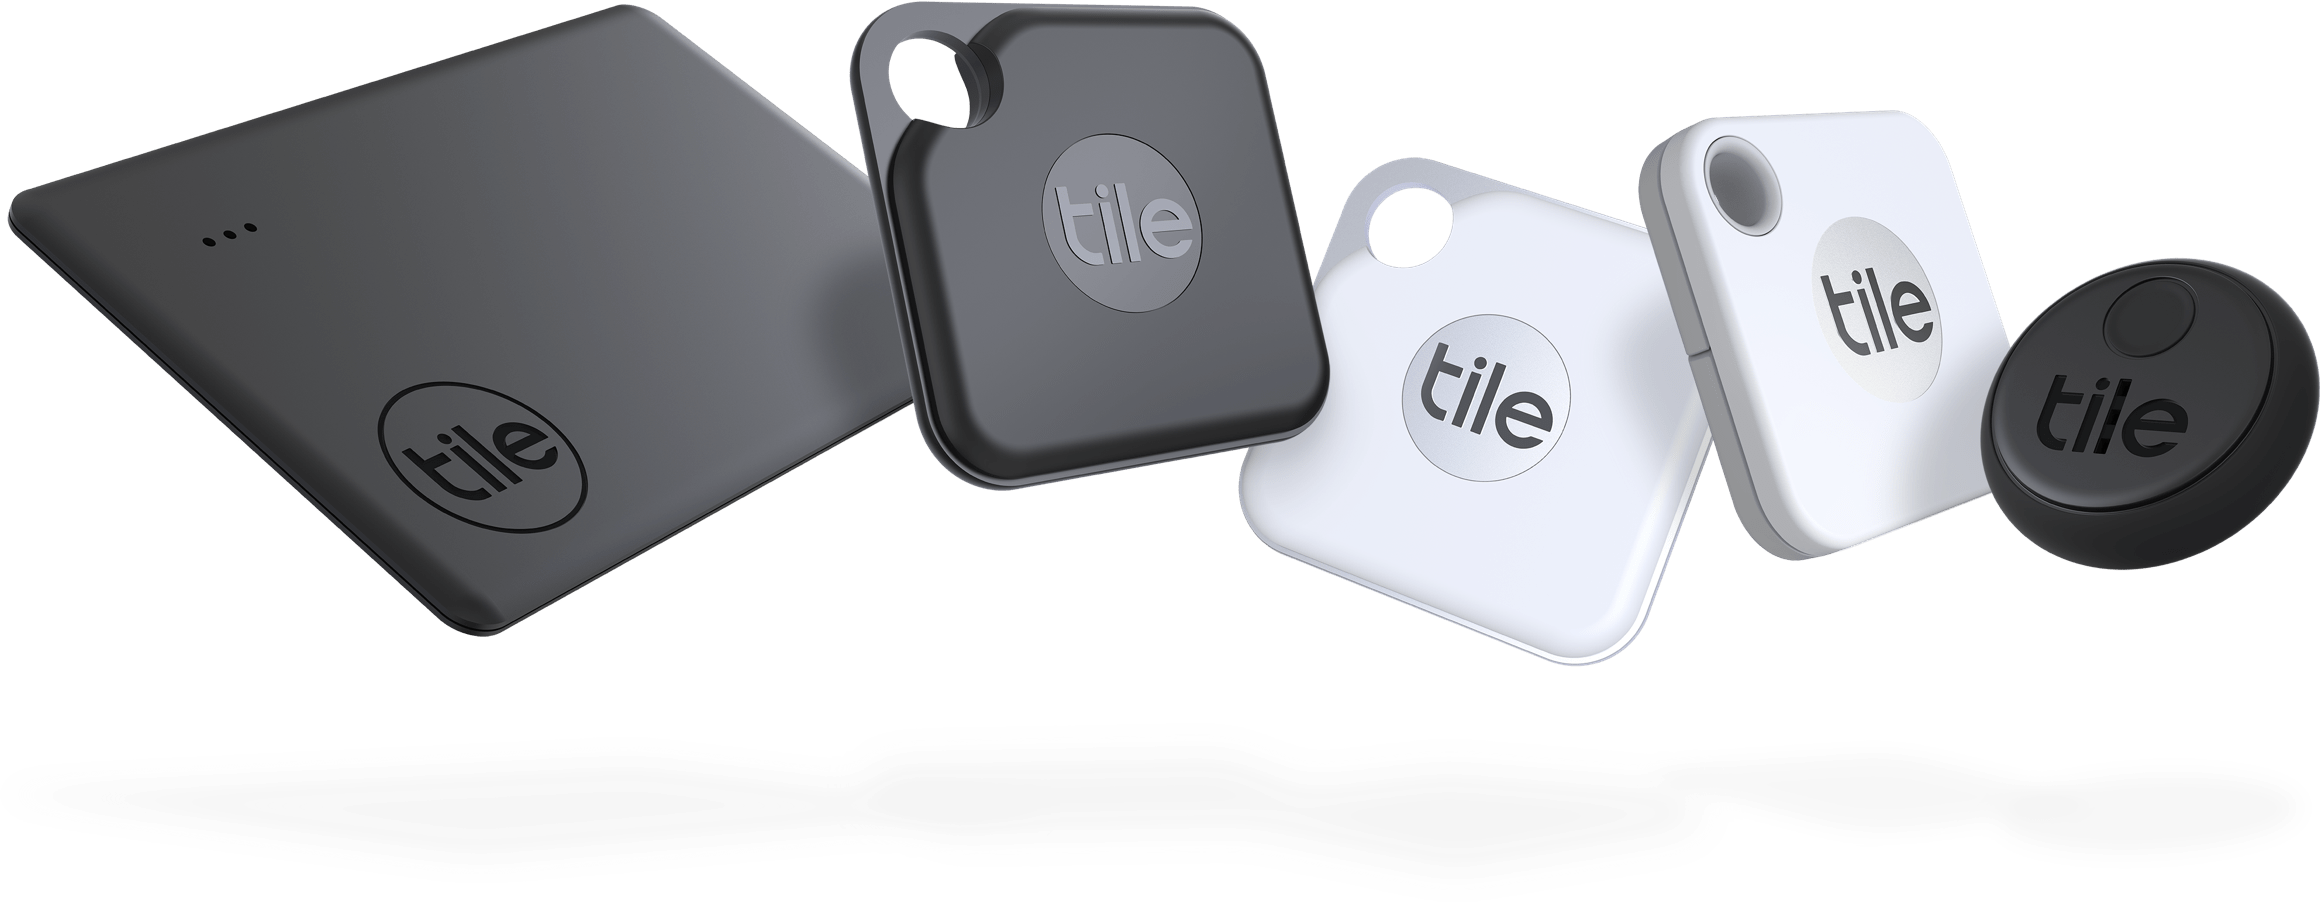 Tile U0026 39 S Latest Bluetooth Trackers Include A Tiny Button